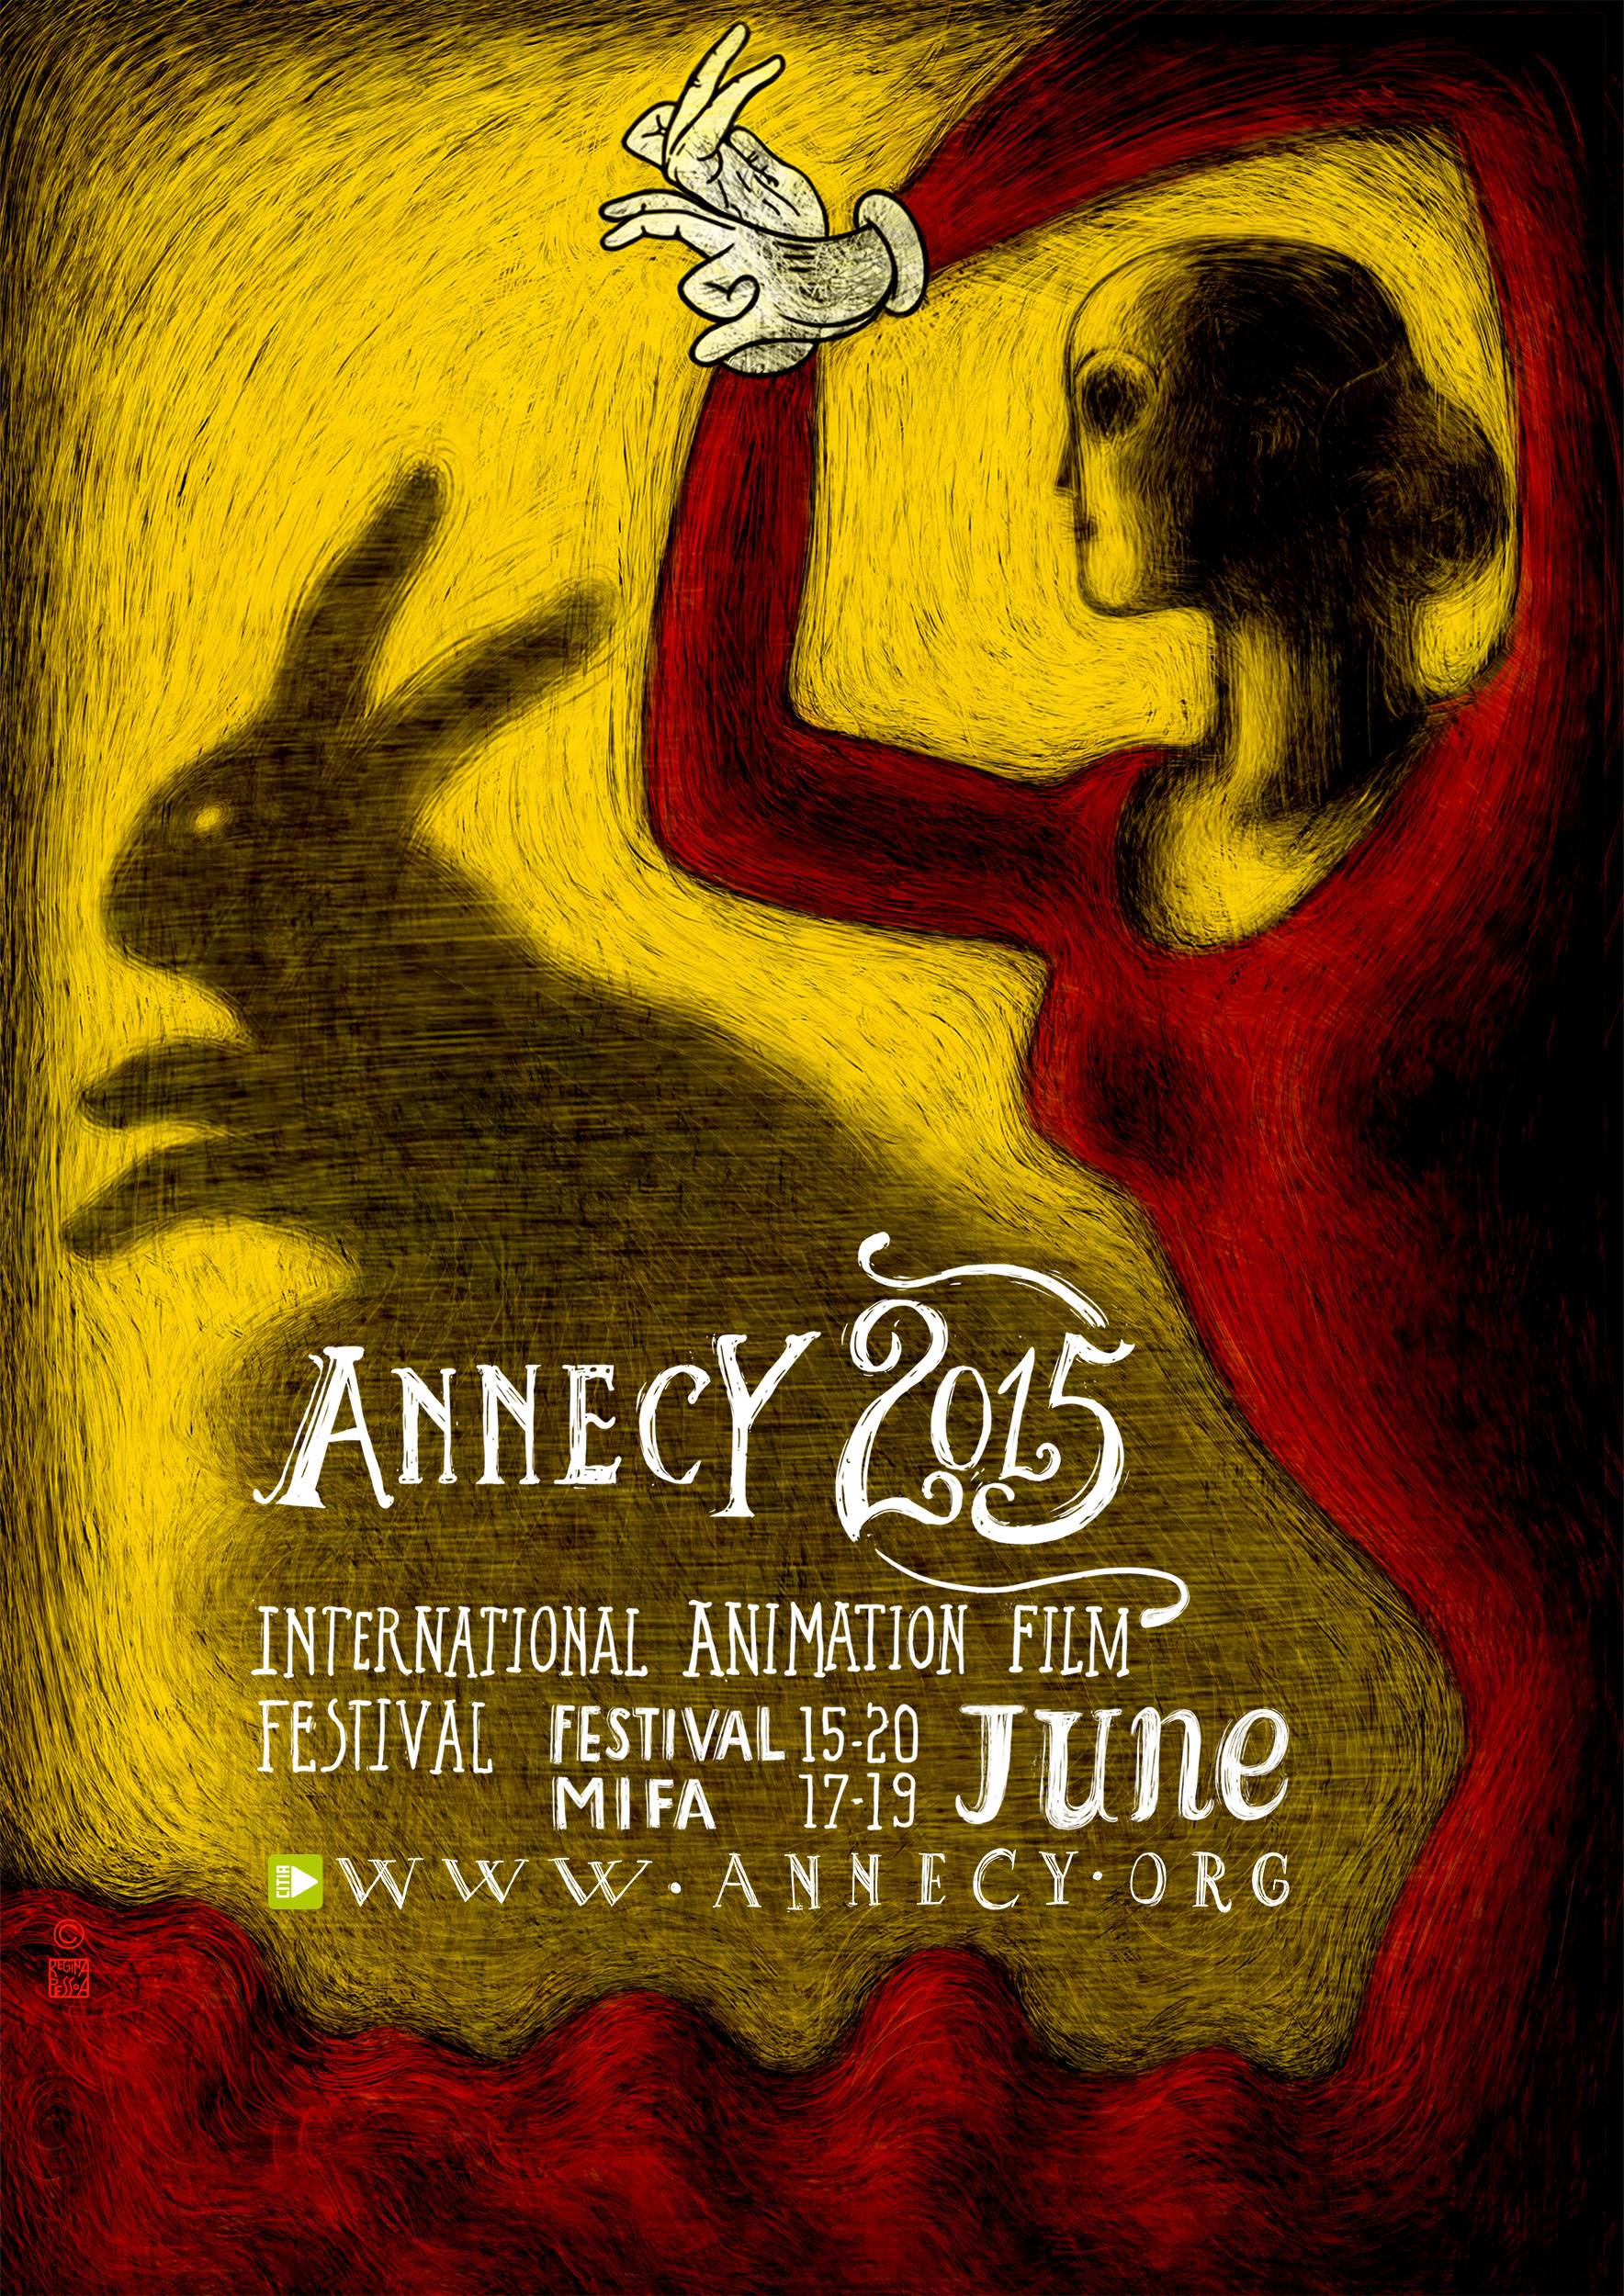 Top summer activities to experience in Annecy